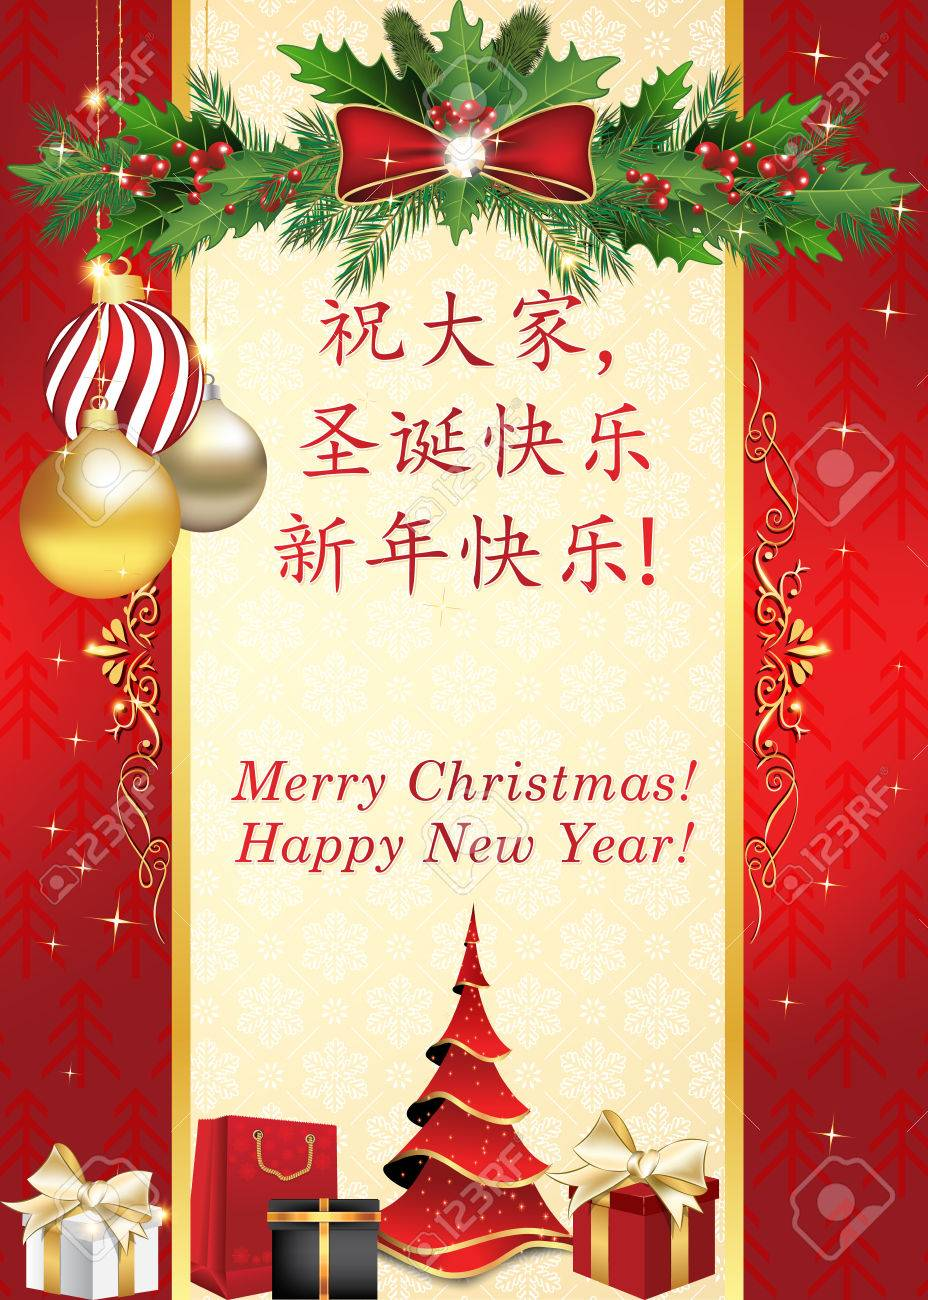 Chinese Christmas.Greeting Card For Christmas And New Year In Chinese And English